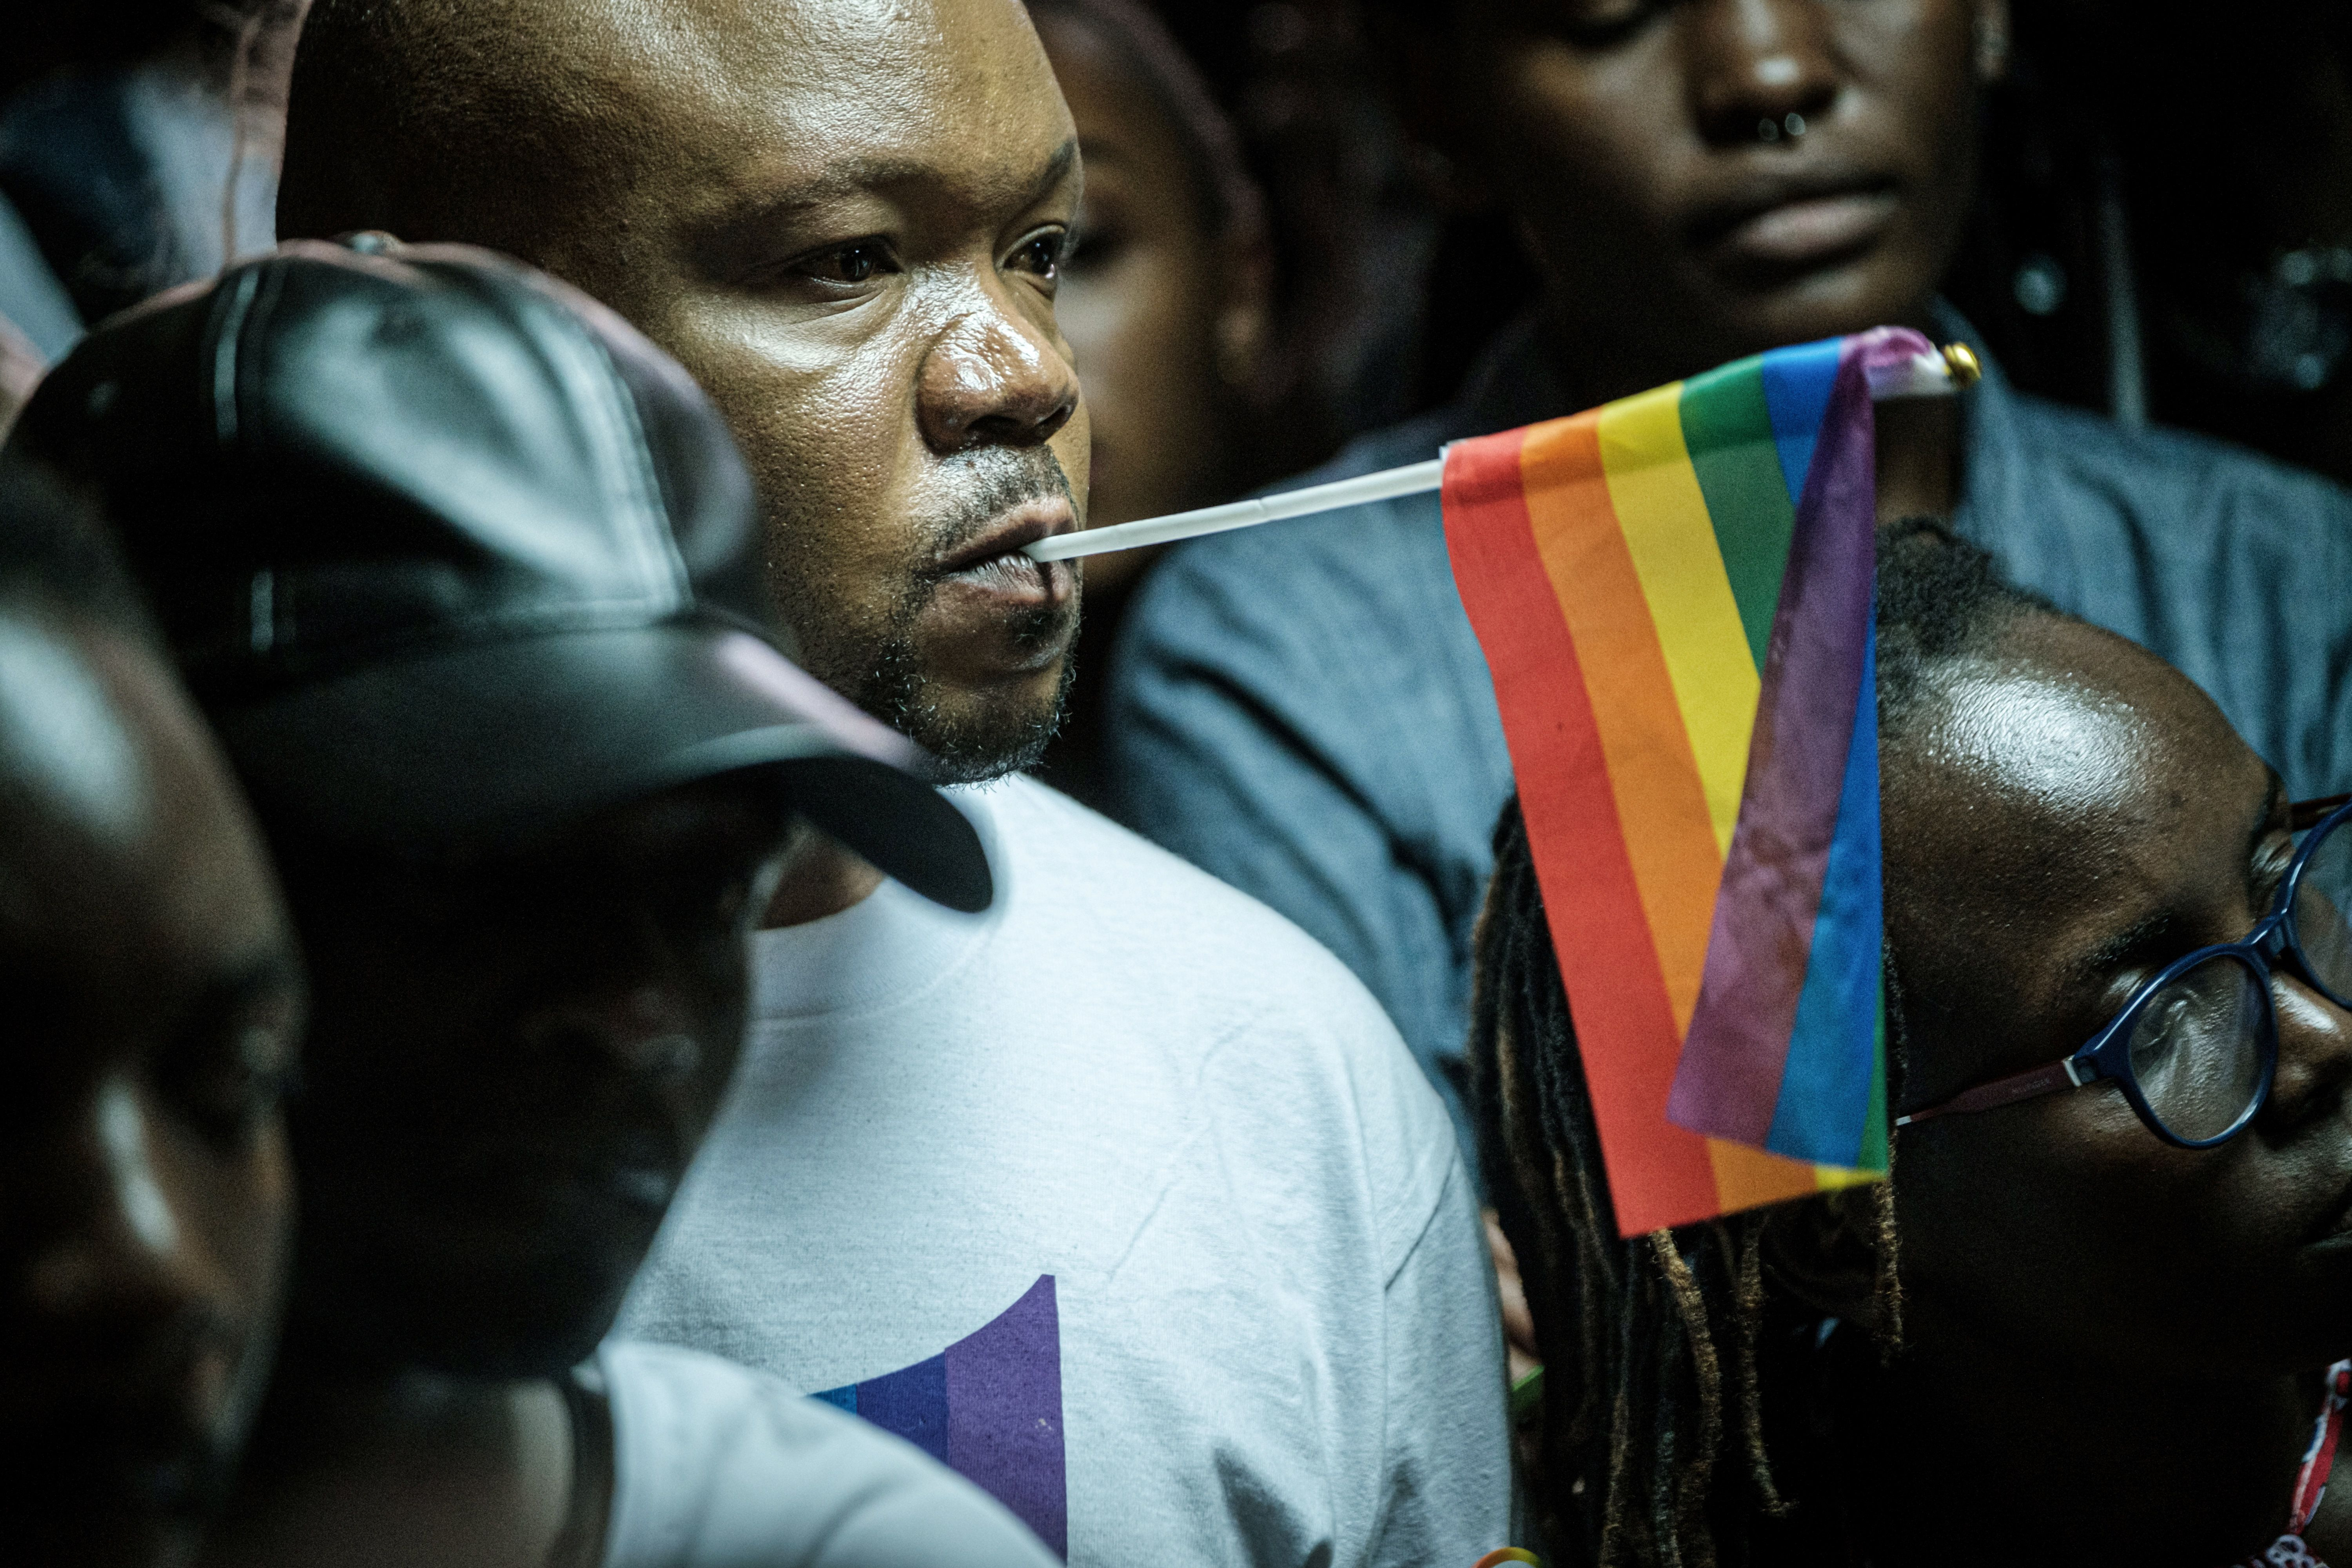 LGBTQ community members and supporters listen to a verdict on scrapping laws criminalising homosexuality at the Milimani high court in Nairobi, Kenya, on May 24, 2019. - Kenya's high court, in a much-awaited verdict, refused to scrap laws criminalising homosexuality, fearing this would lead to same-sex marriage which it said was unconstitutional. (YASUYOSHI CHIBA/AFP/Getty Images)